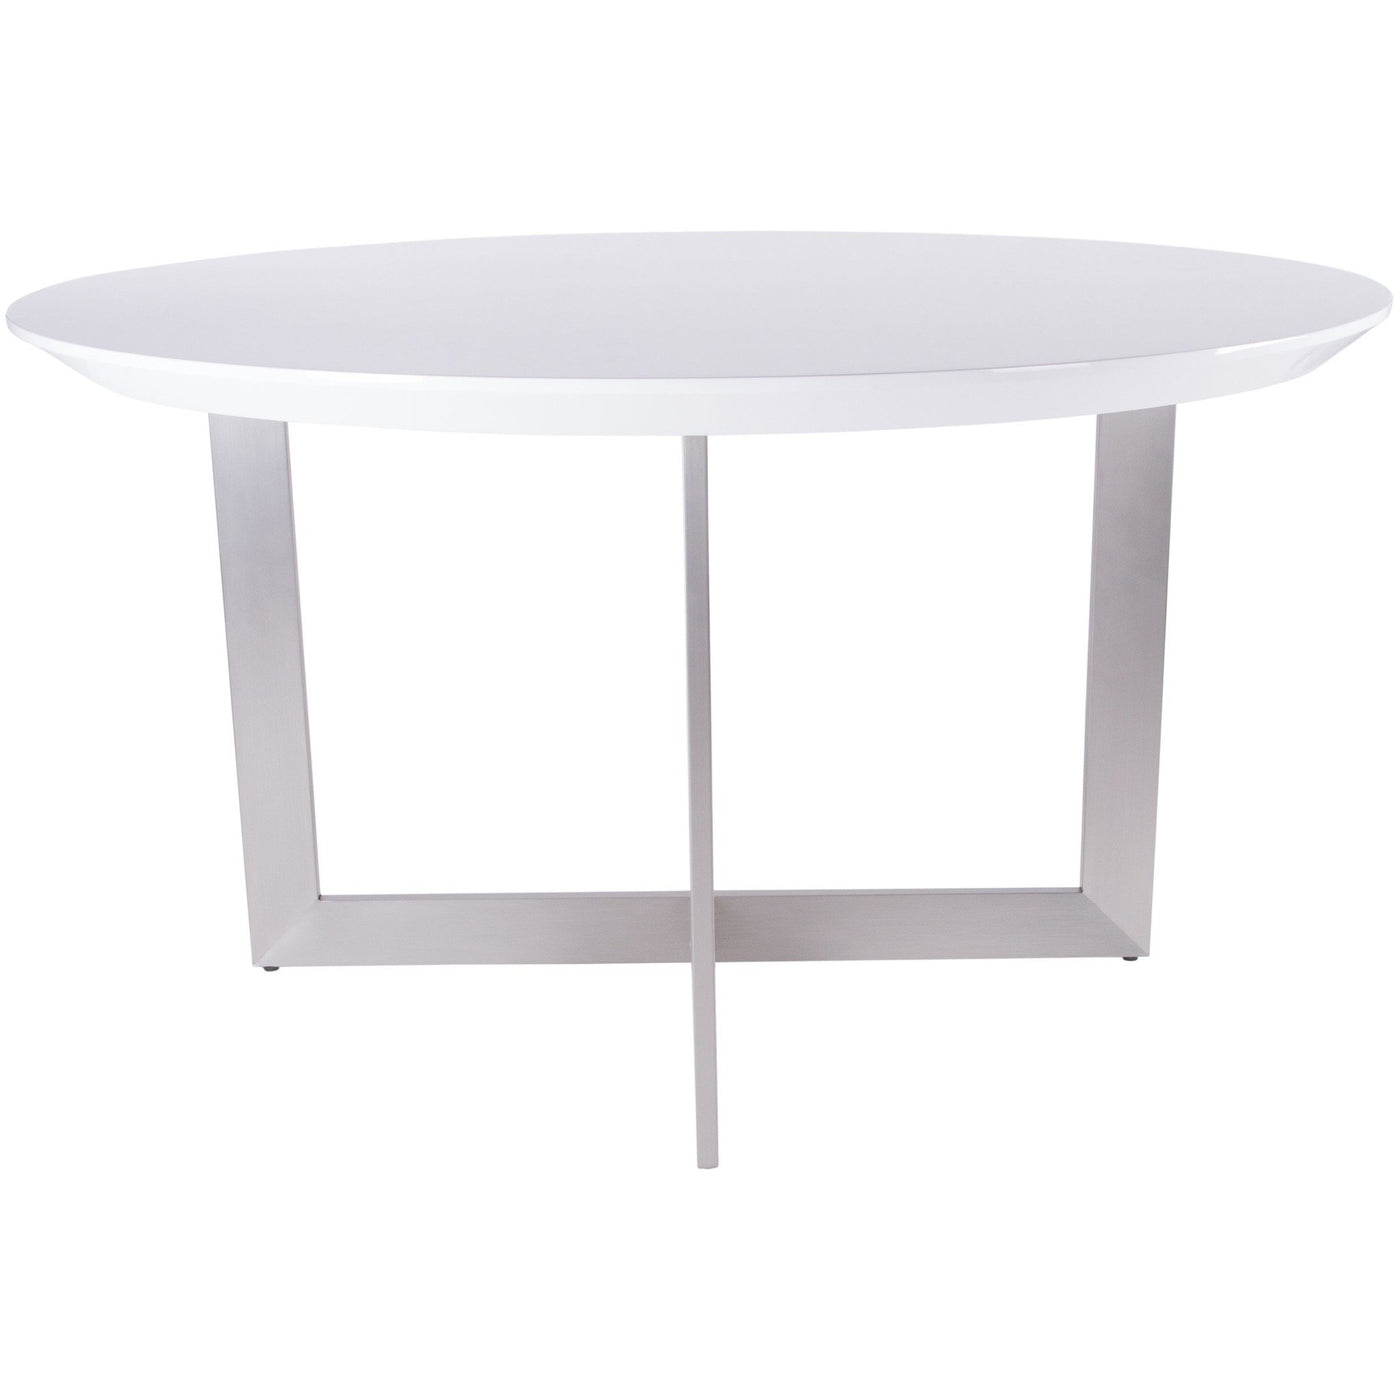 Shop Online Tosca 54 Inch Round Dining Table For Home